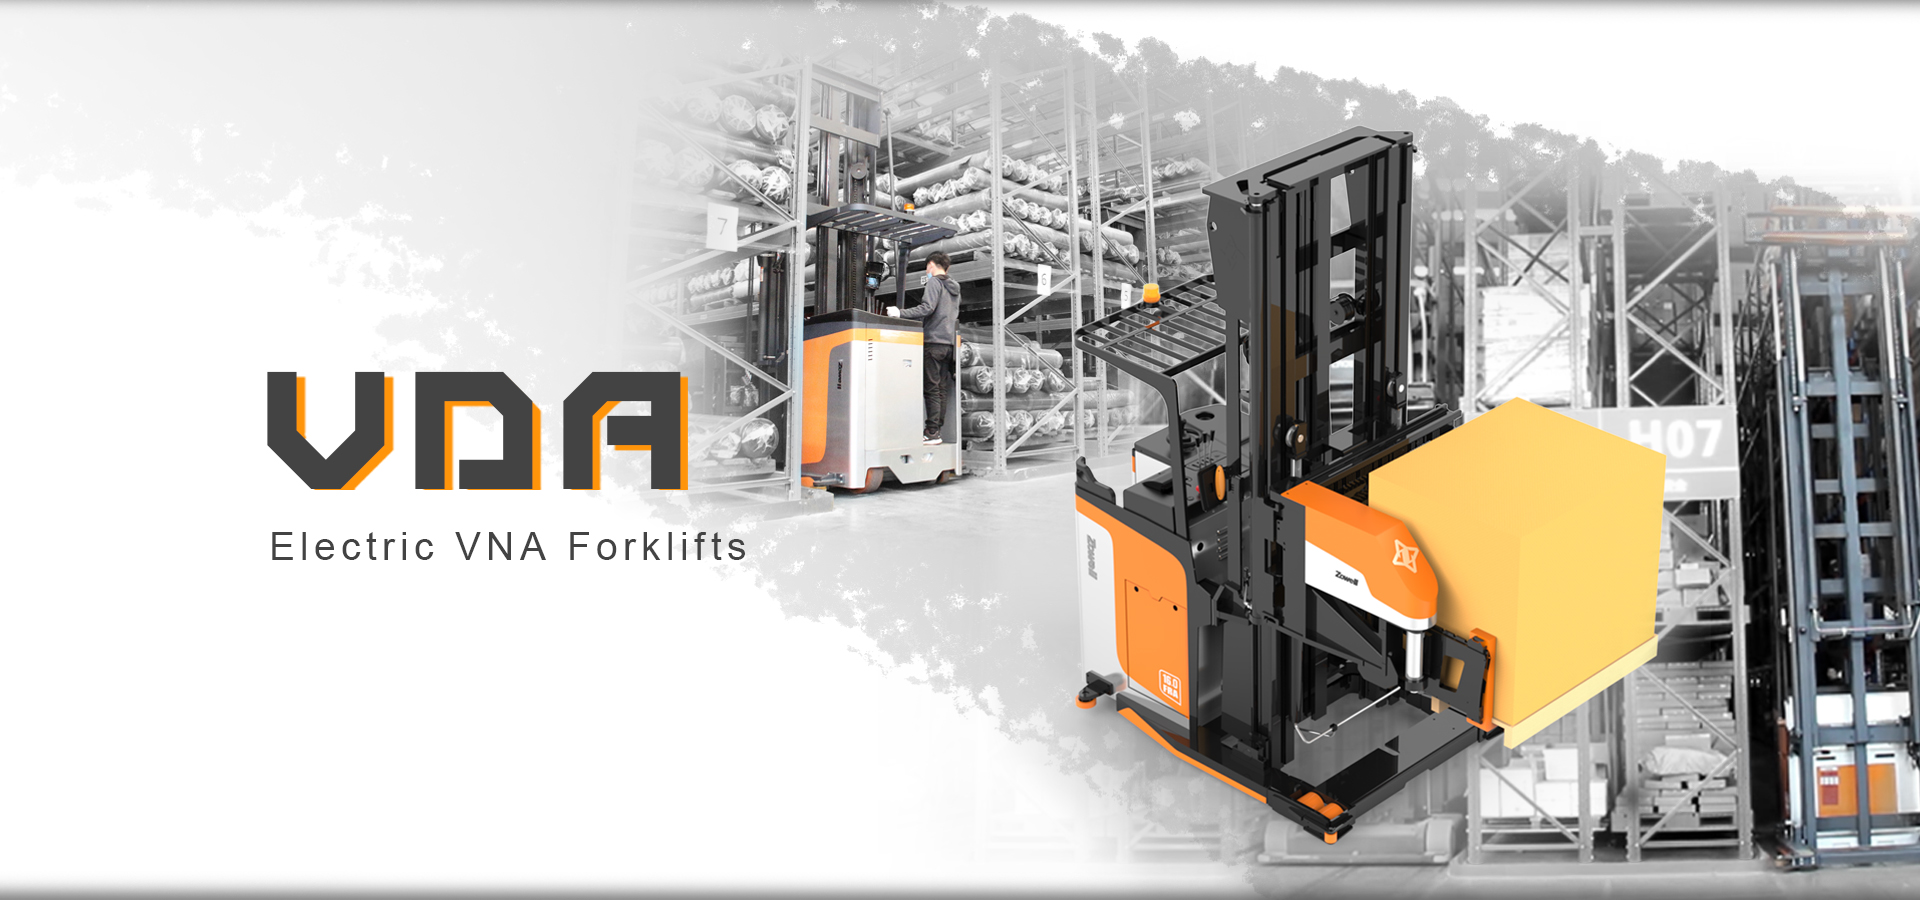 Electric VNA Forklifts